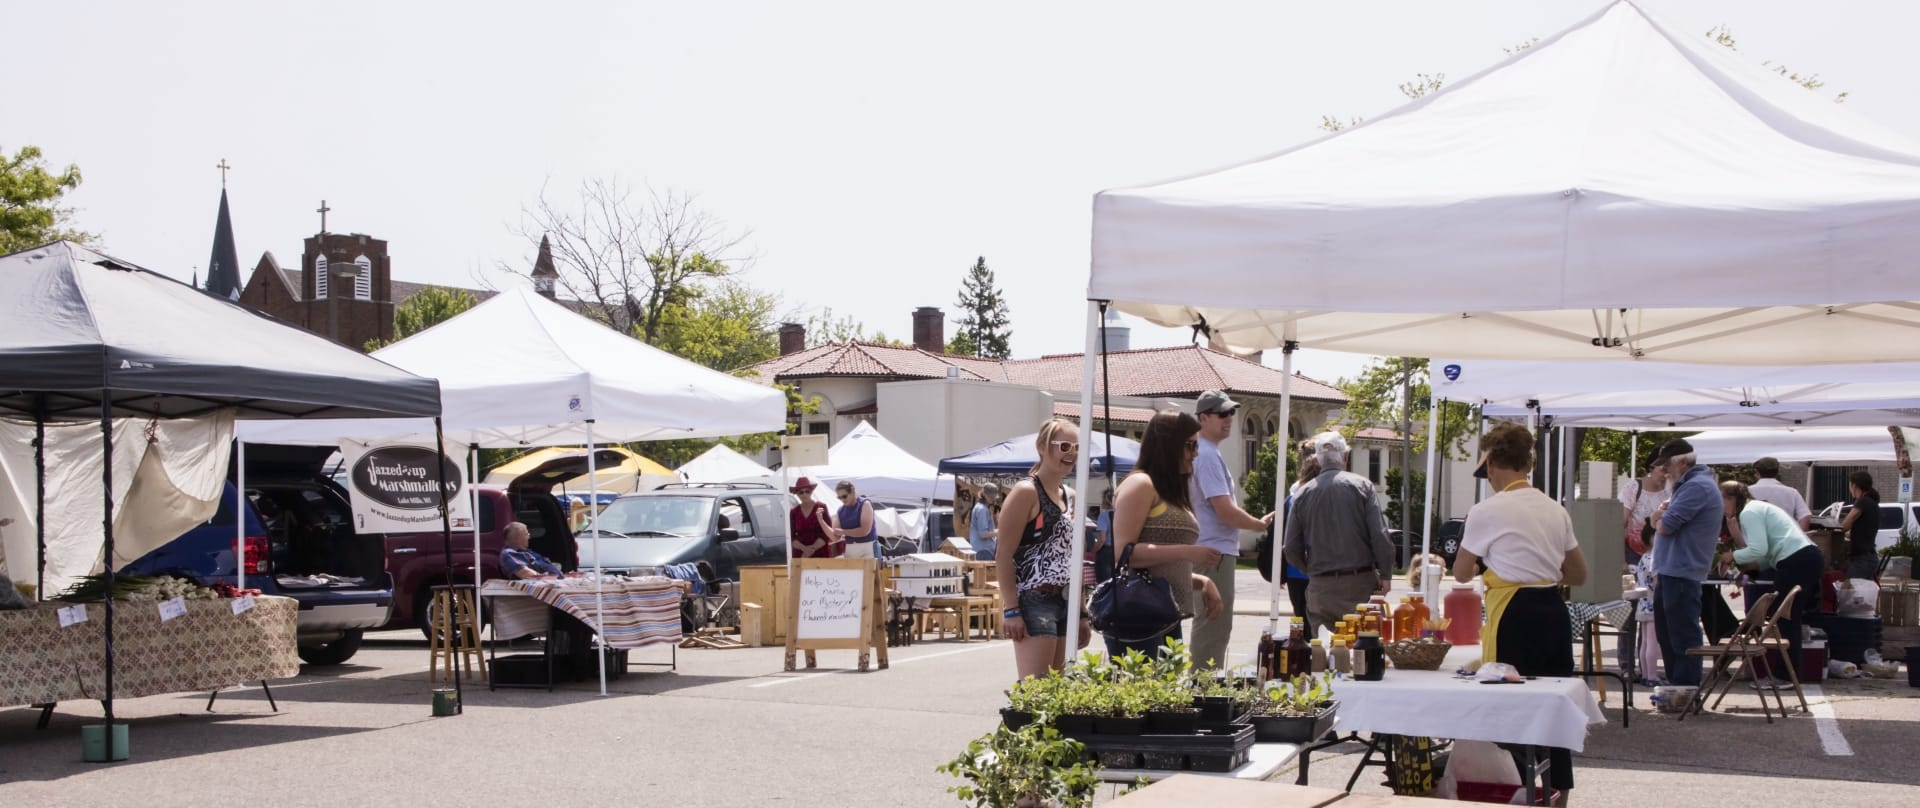 Fort Farmers Market Saturdays 8am - 12pm downtown fort atkinson